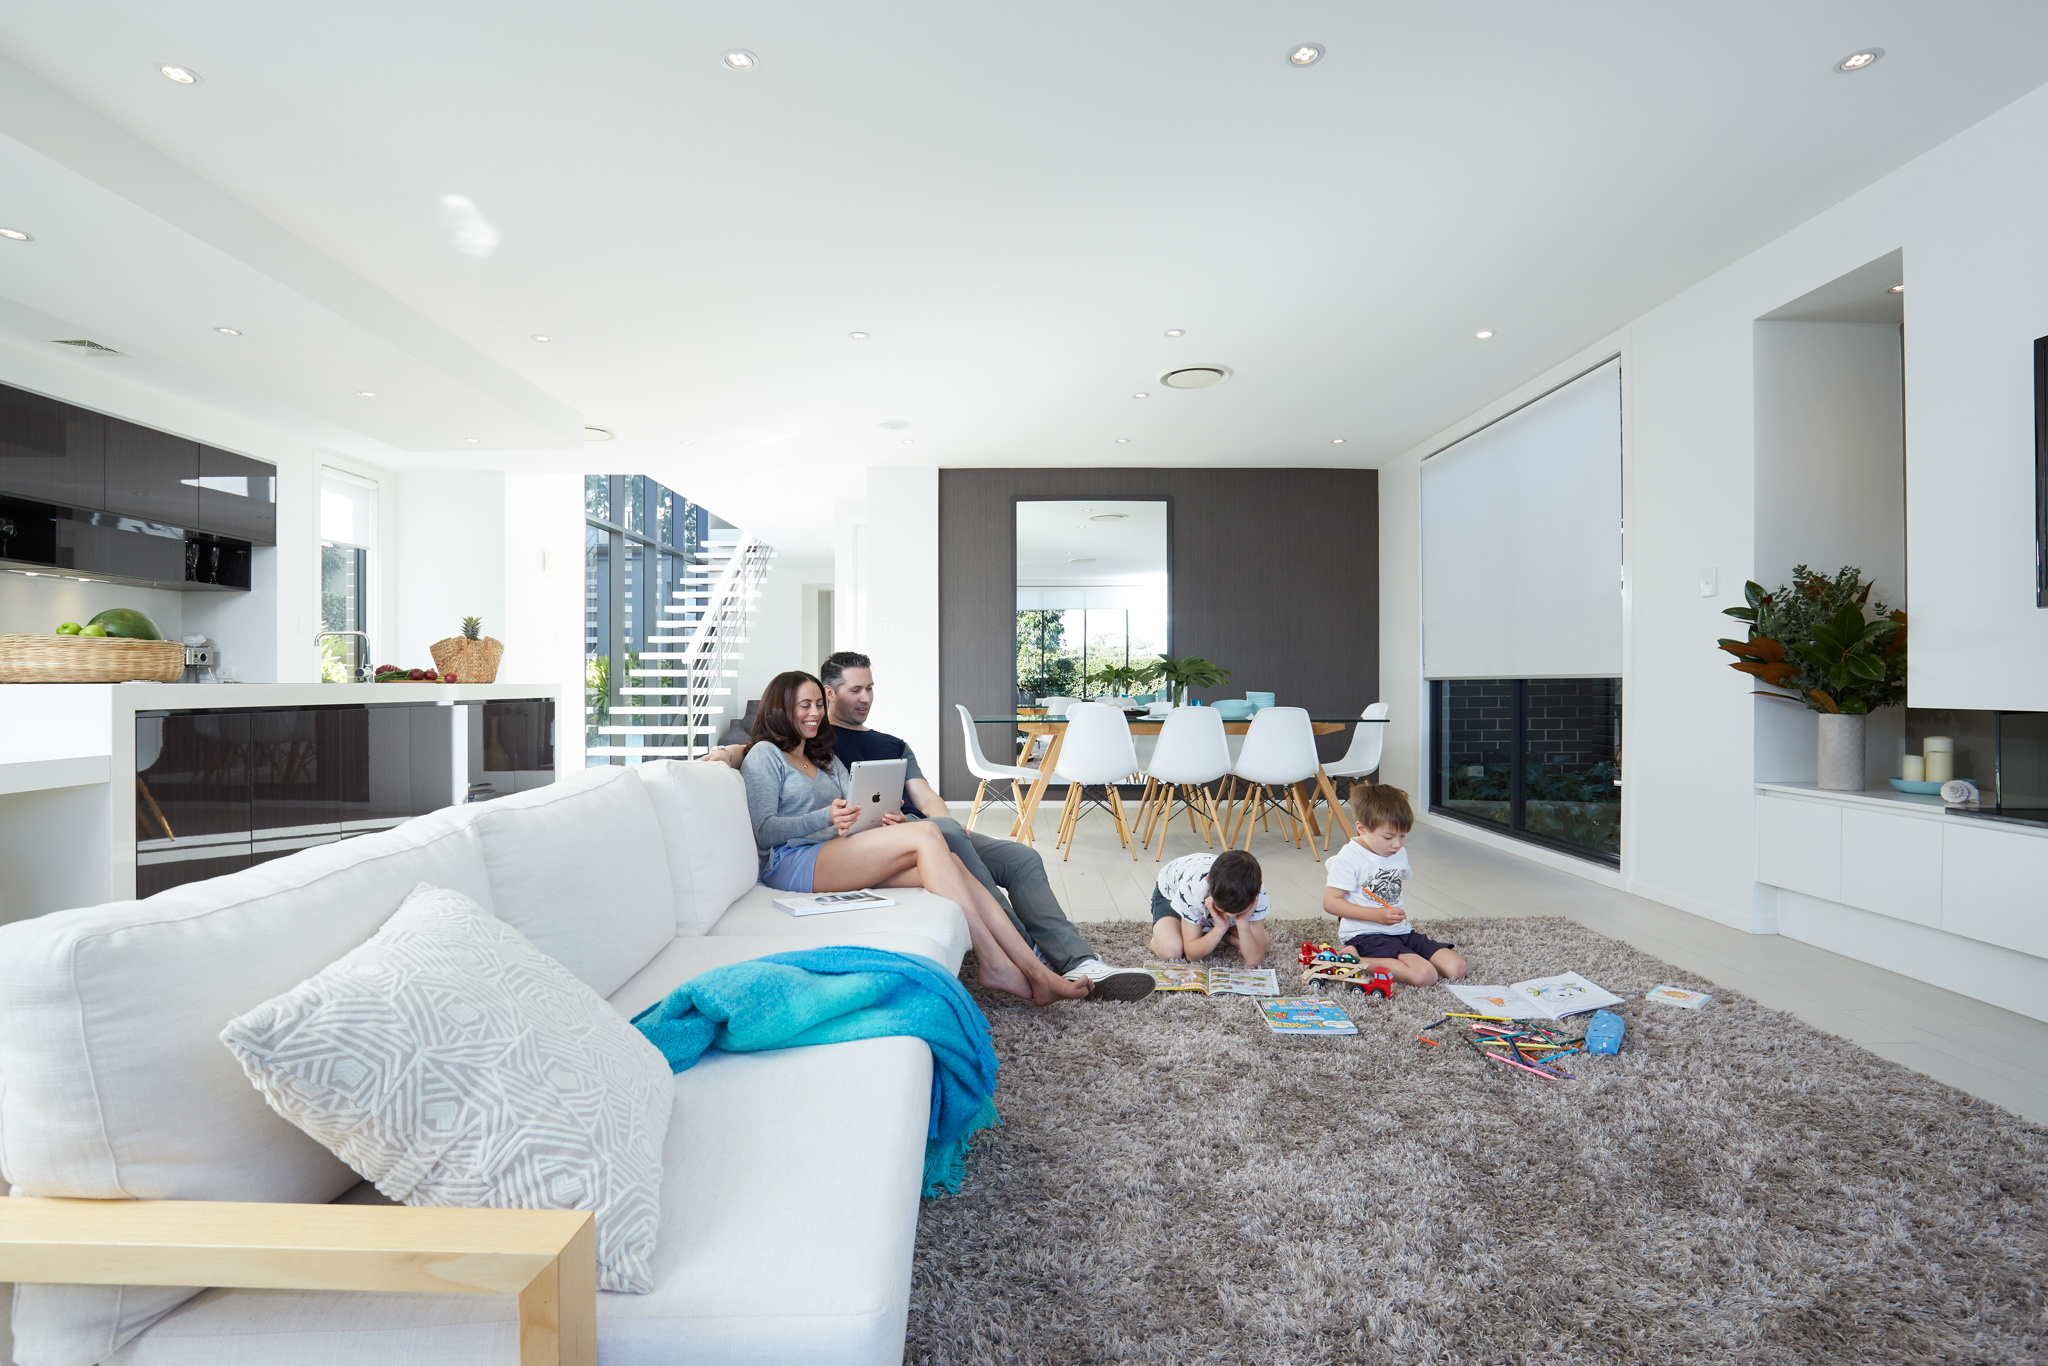 KEEPING COOL AT HOME - Stay cool in summer and warm in winter with wall mounted split systems, multi systems, ceiling casette units and ducted air conditioners.